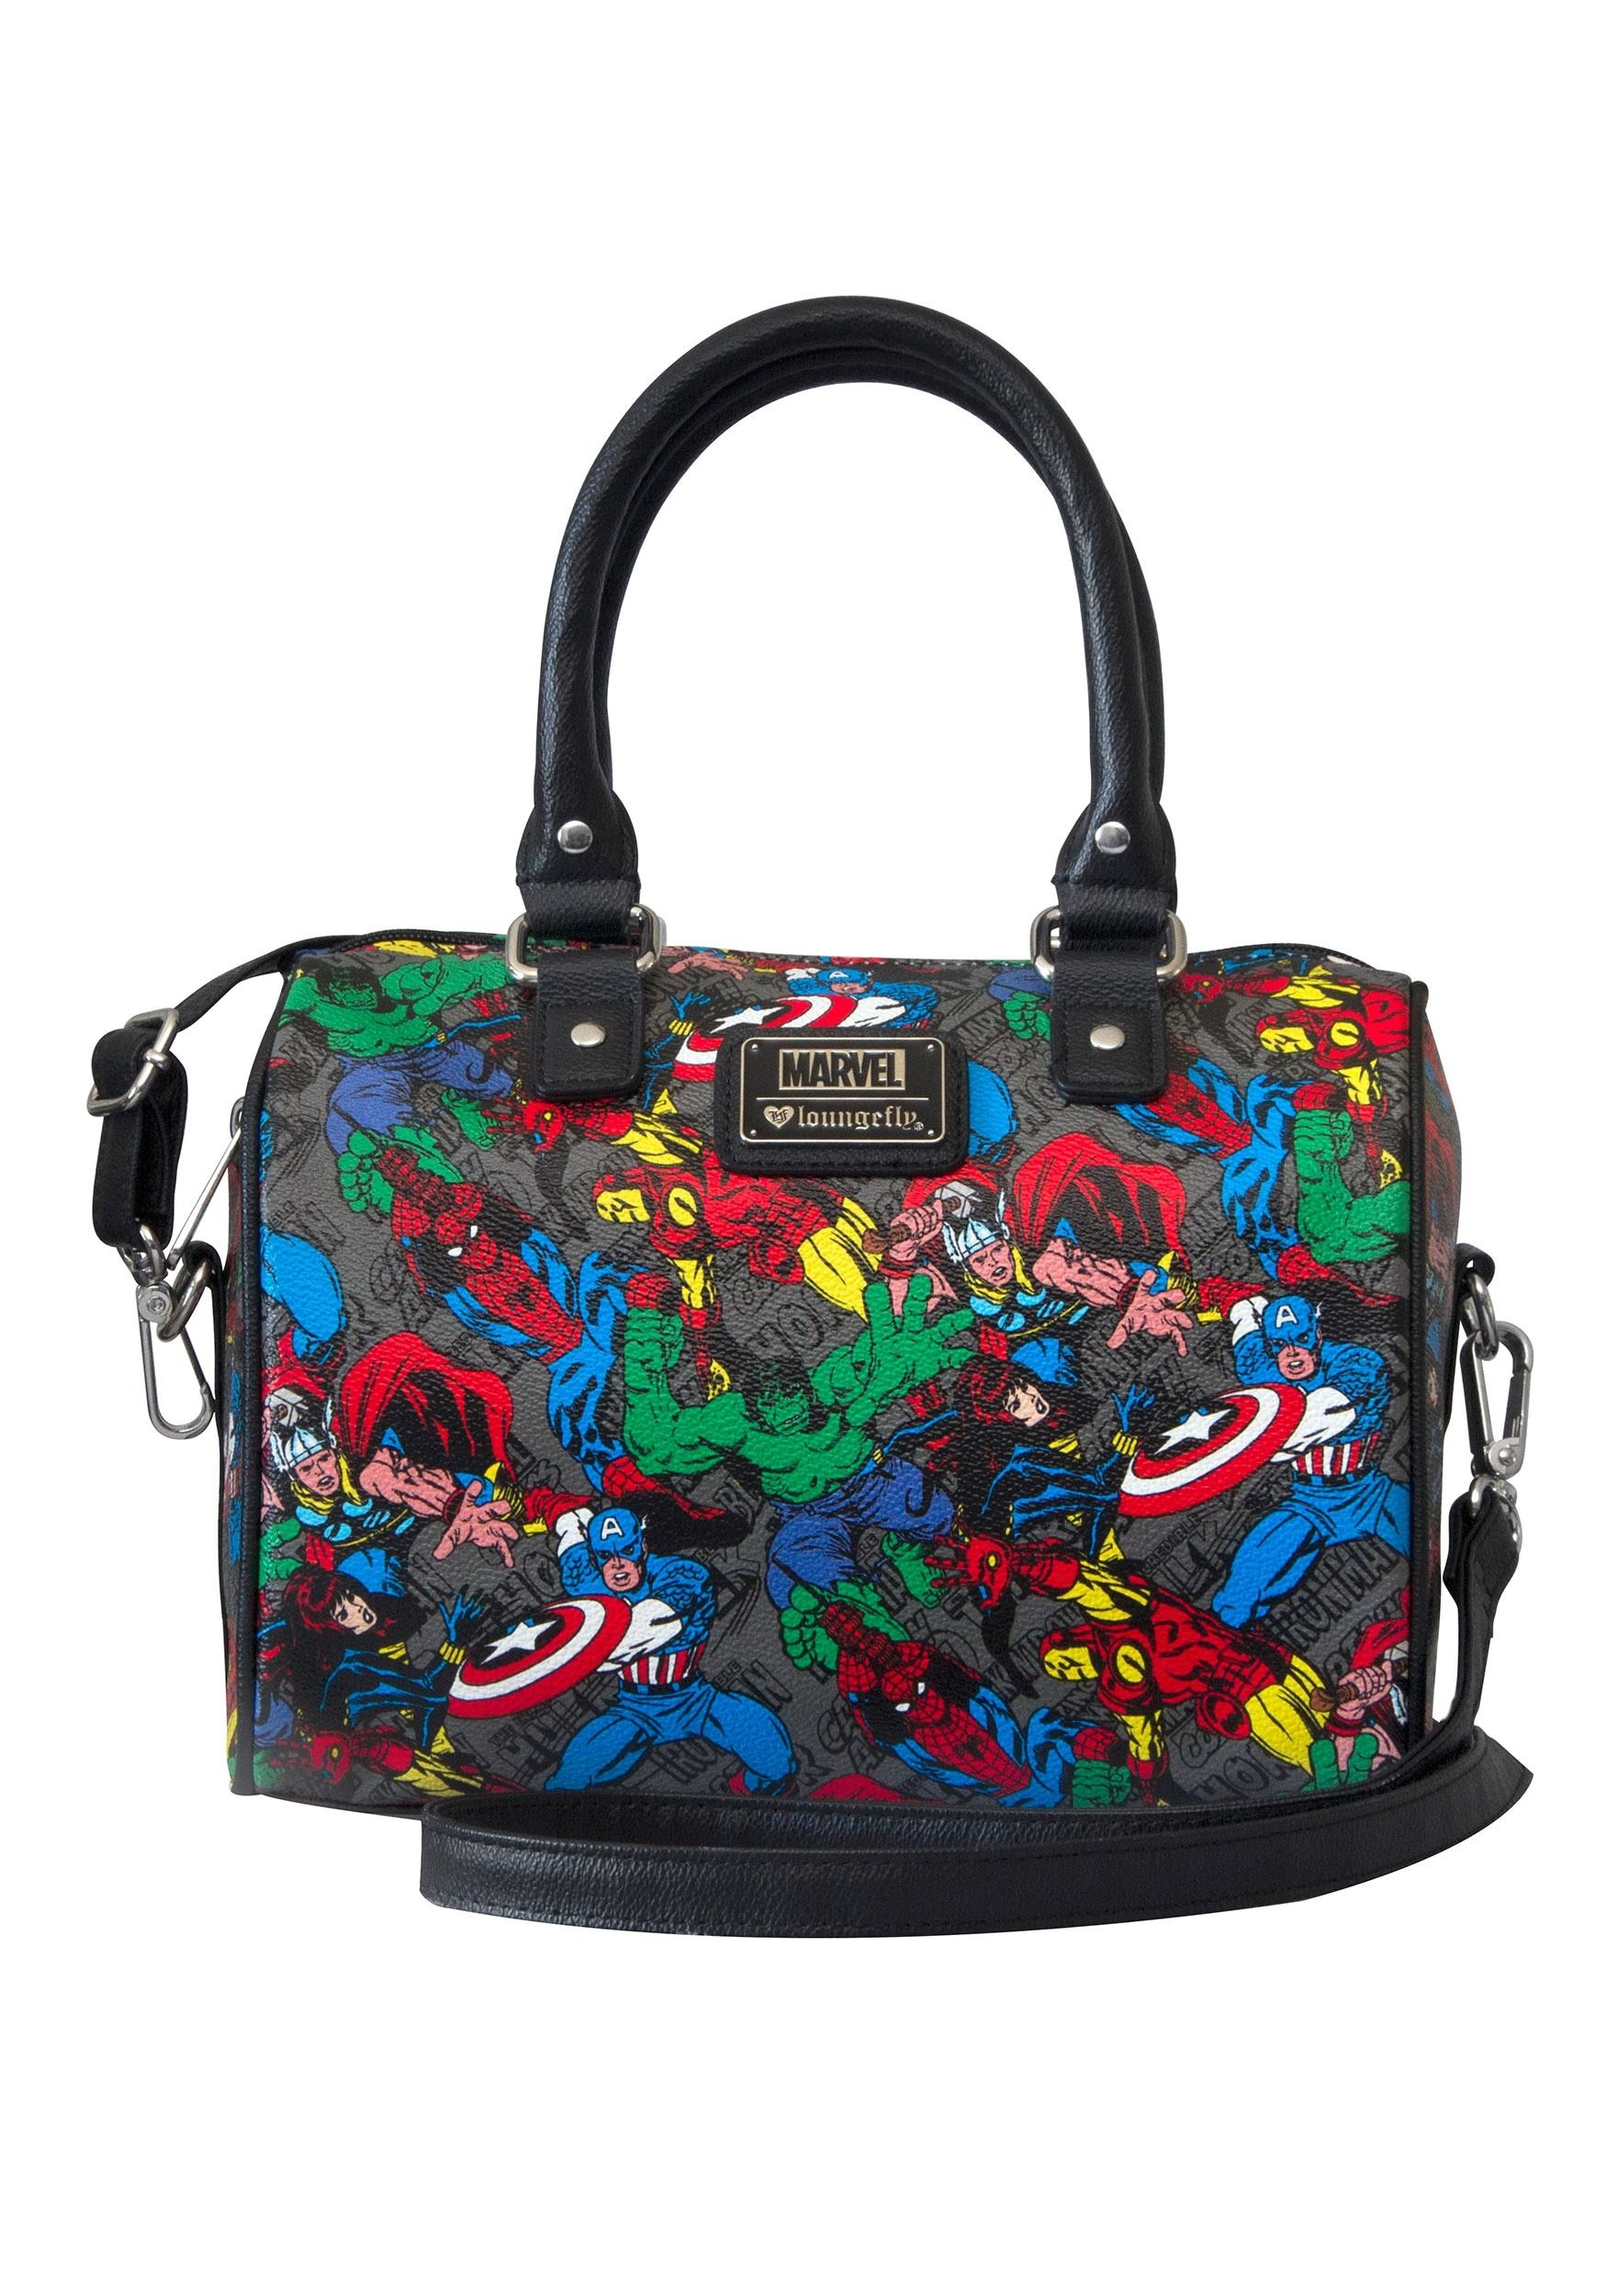 ea652fd69f4 Marvel Avengers All Over Print Faux Leather Crossbody Purse | gifts ...